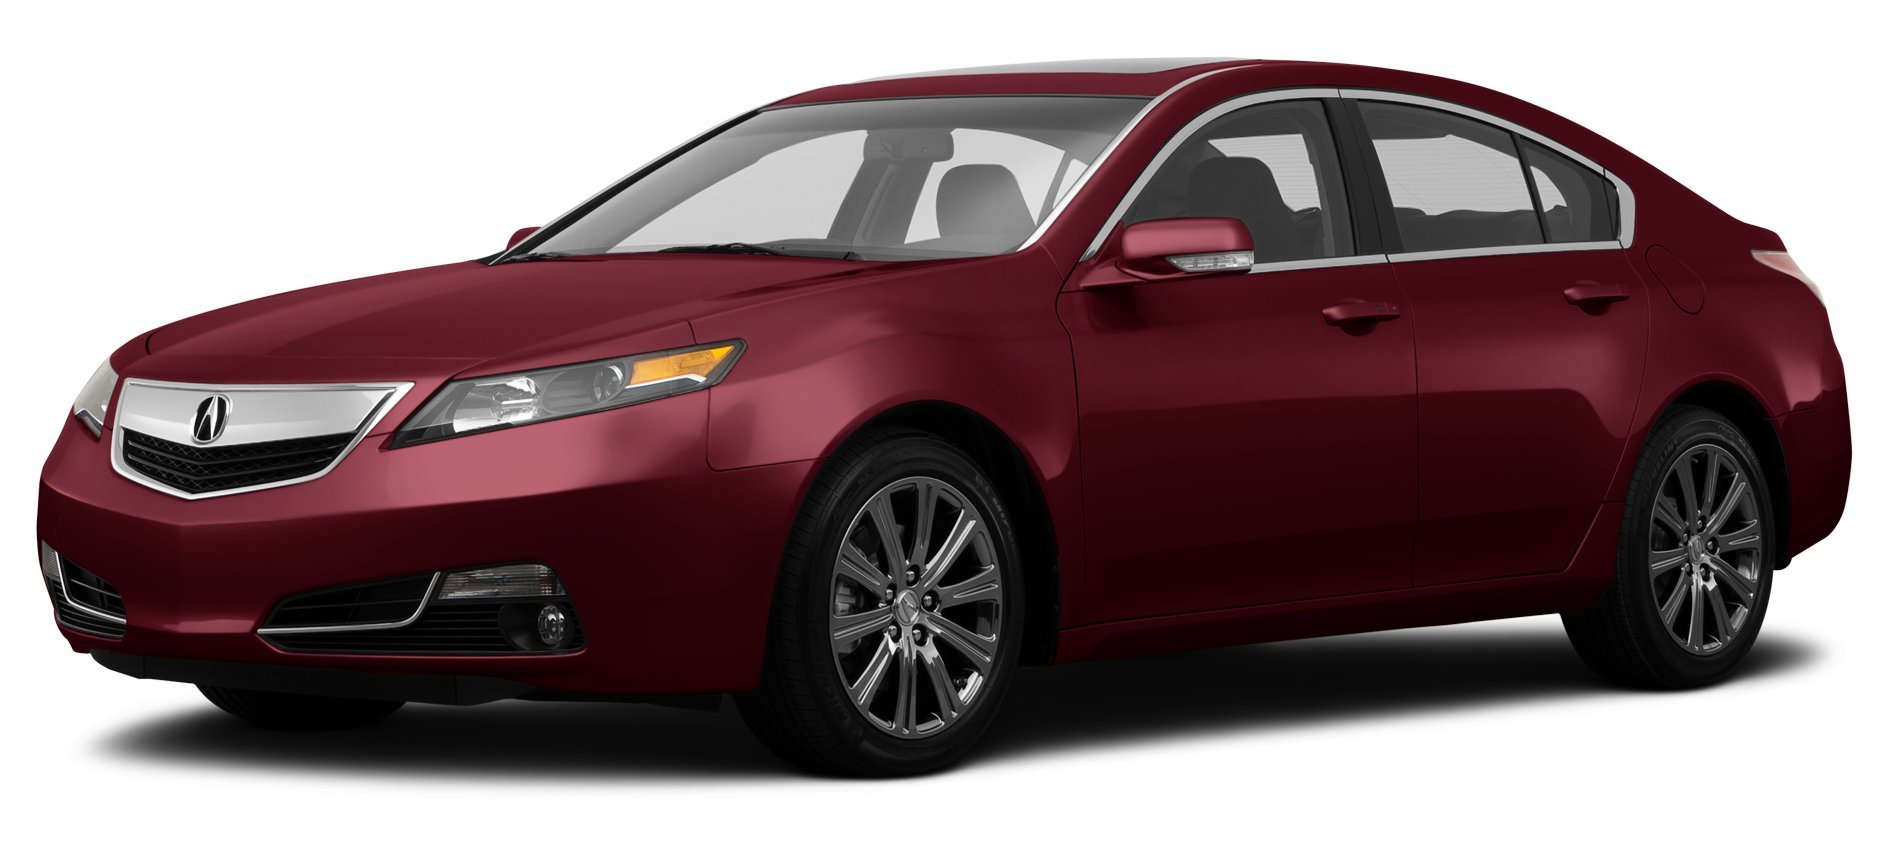 Amazon.com: 2014 Acura TL Reviews, Images, and Specs: Vehicles